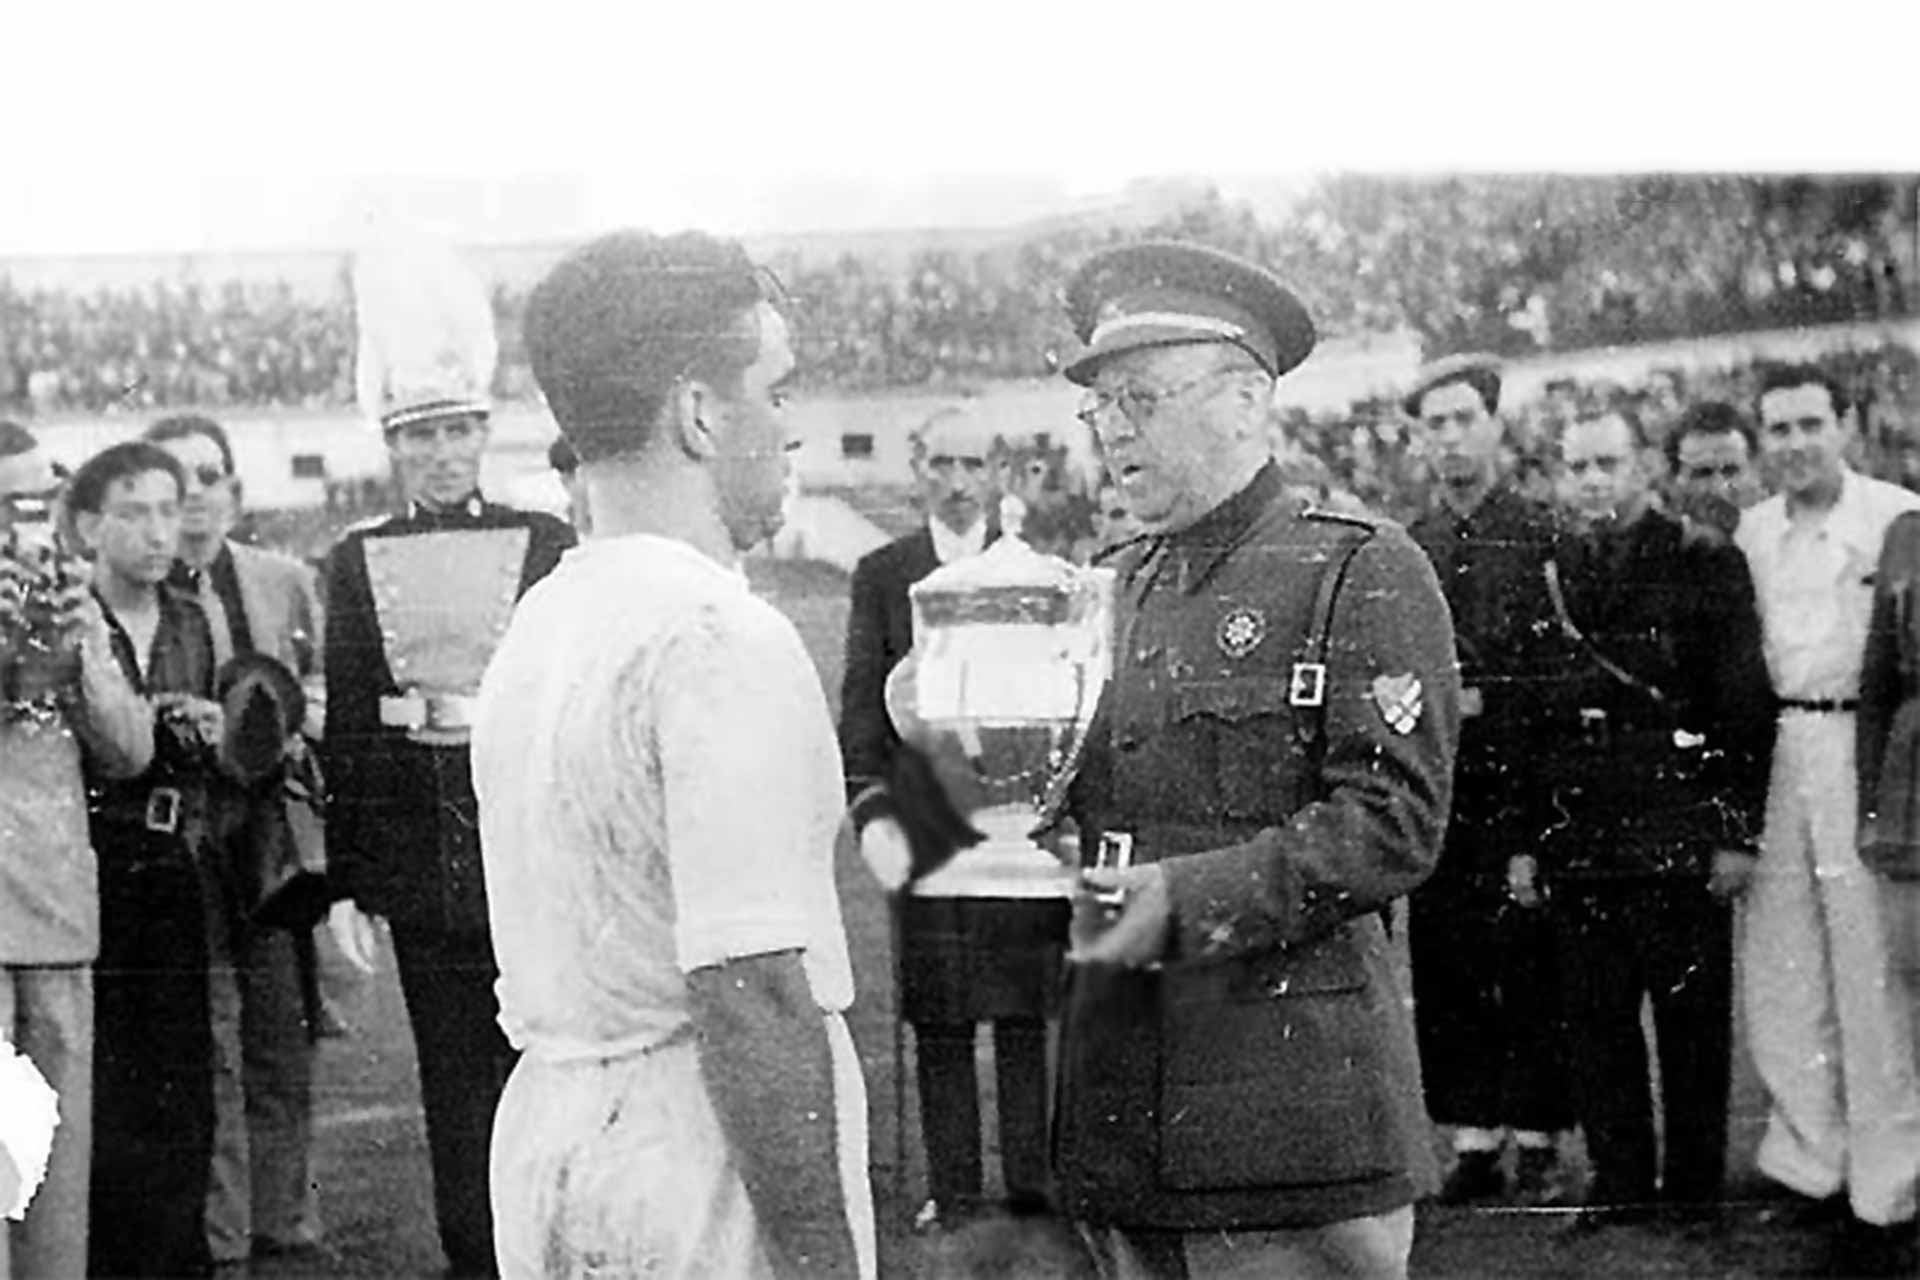 General Moscardó hands over the Copa del Generalísimo, 1939 (Photo: Joseph Brangulí / ABC de Sevilla)